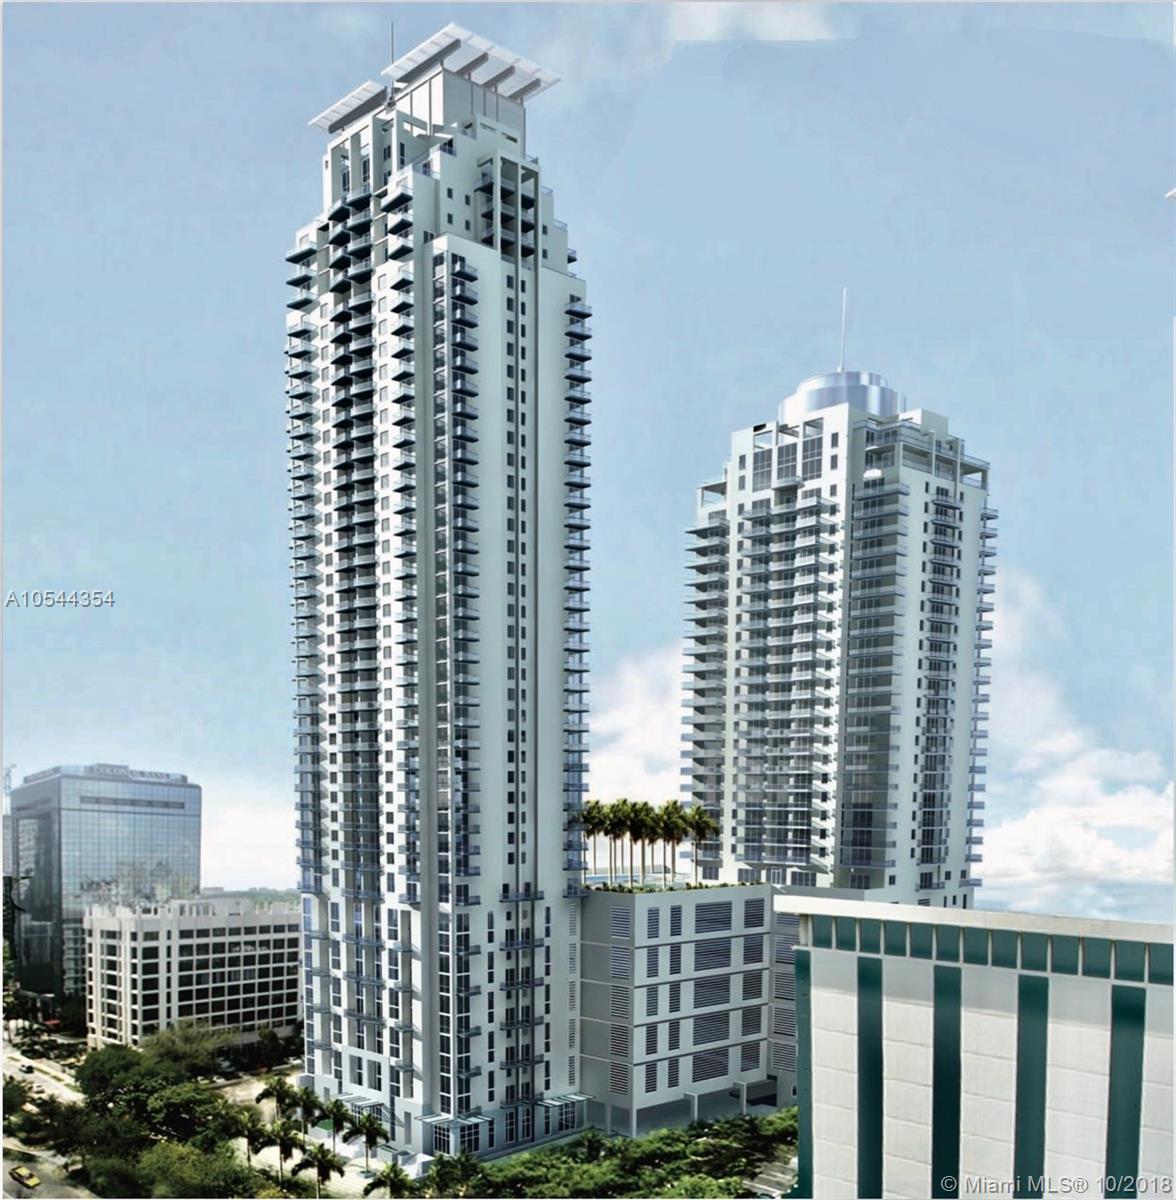 Spectacular unit in sought-after 1060 Brickell! Great building! Great amenities, including golf simulator! All-in-all, a great investment oportunity Come and see it!